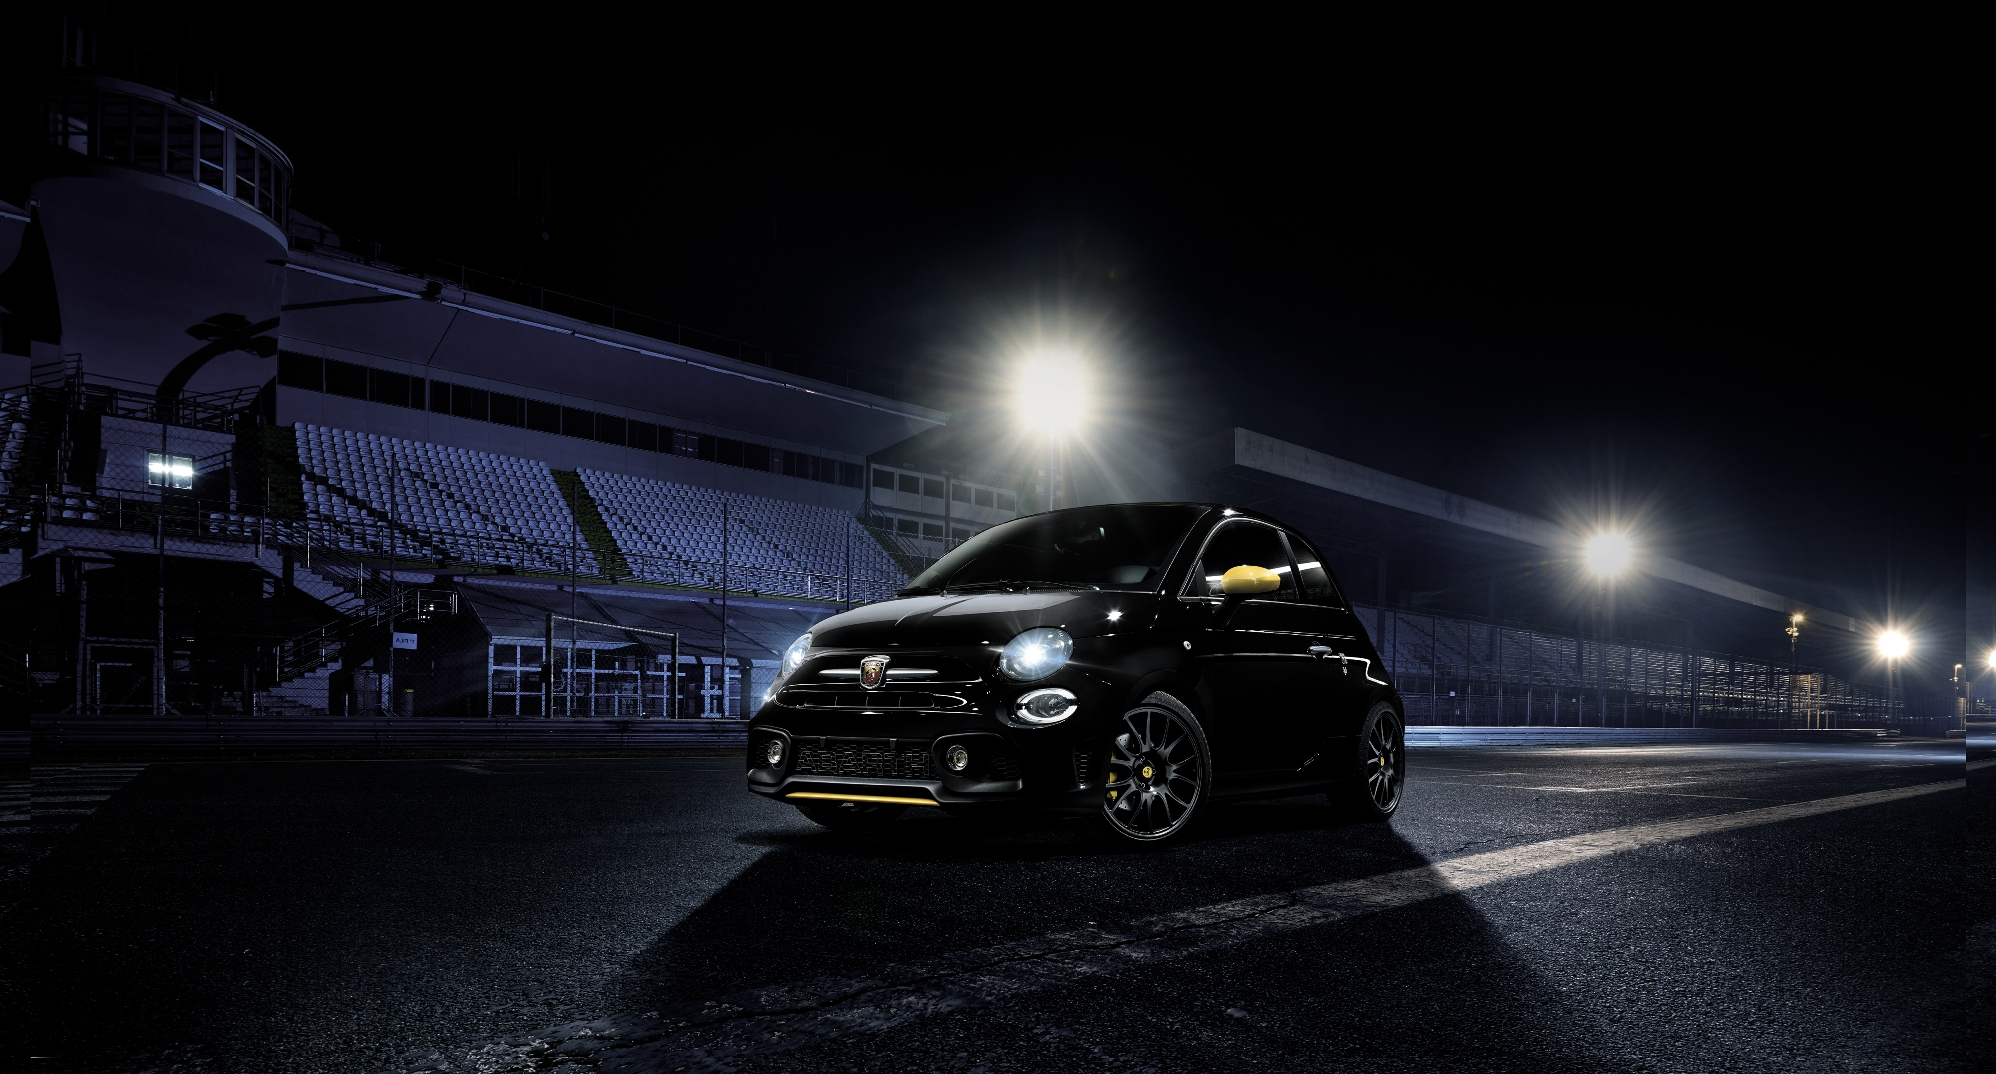 Prices revealed for new Abarth 595 Trofeo